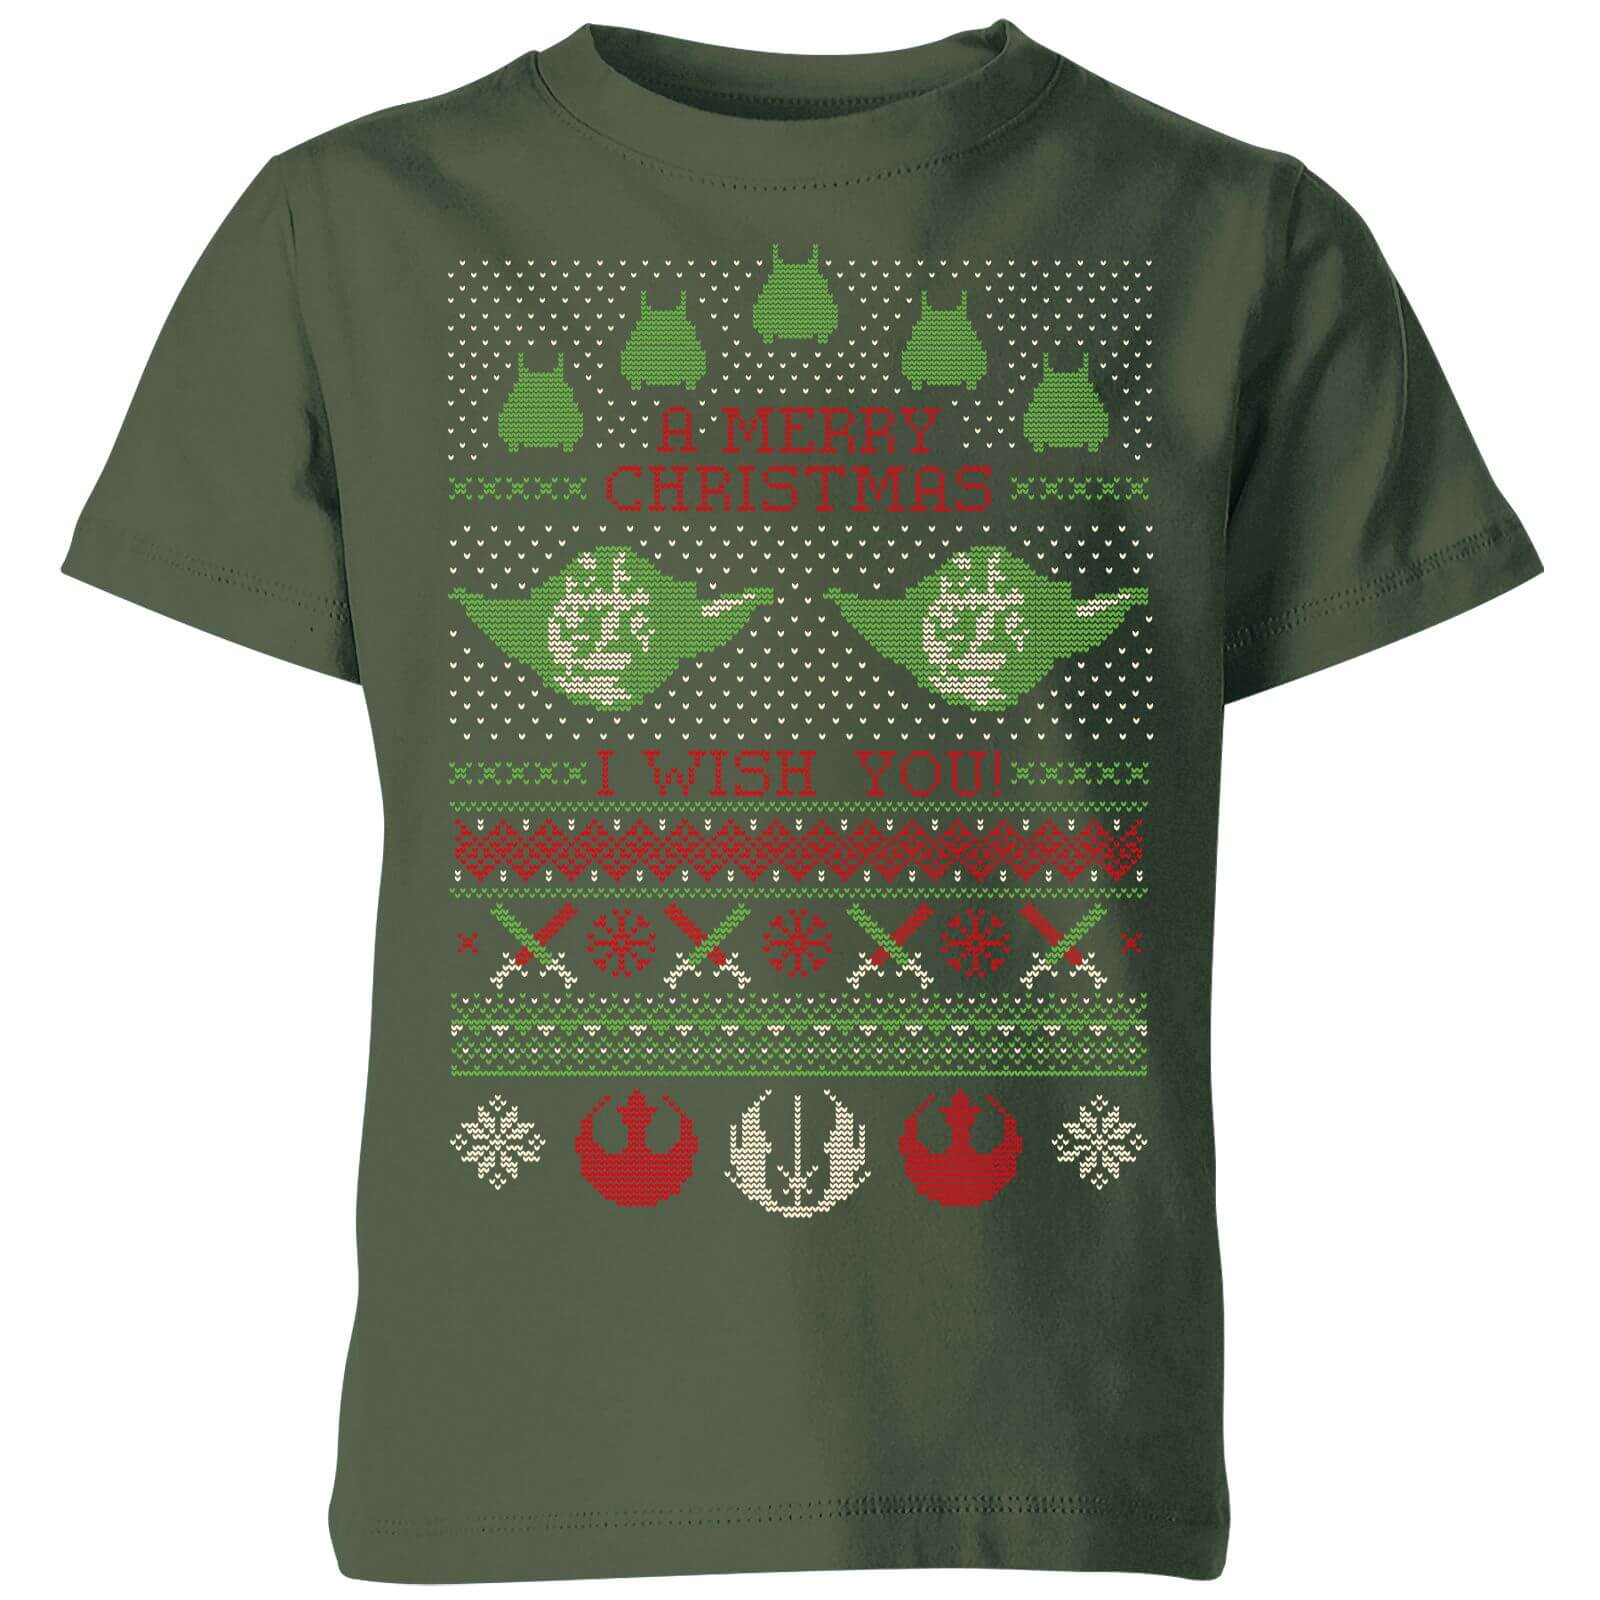 554292b9 Star Wars Merry Christmas I Wish You Knit Kids Christmas T-Shirt - Forest  Green | IWOOT